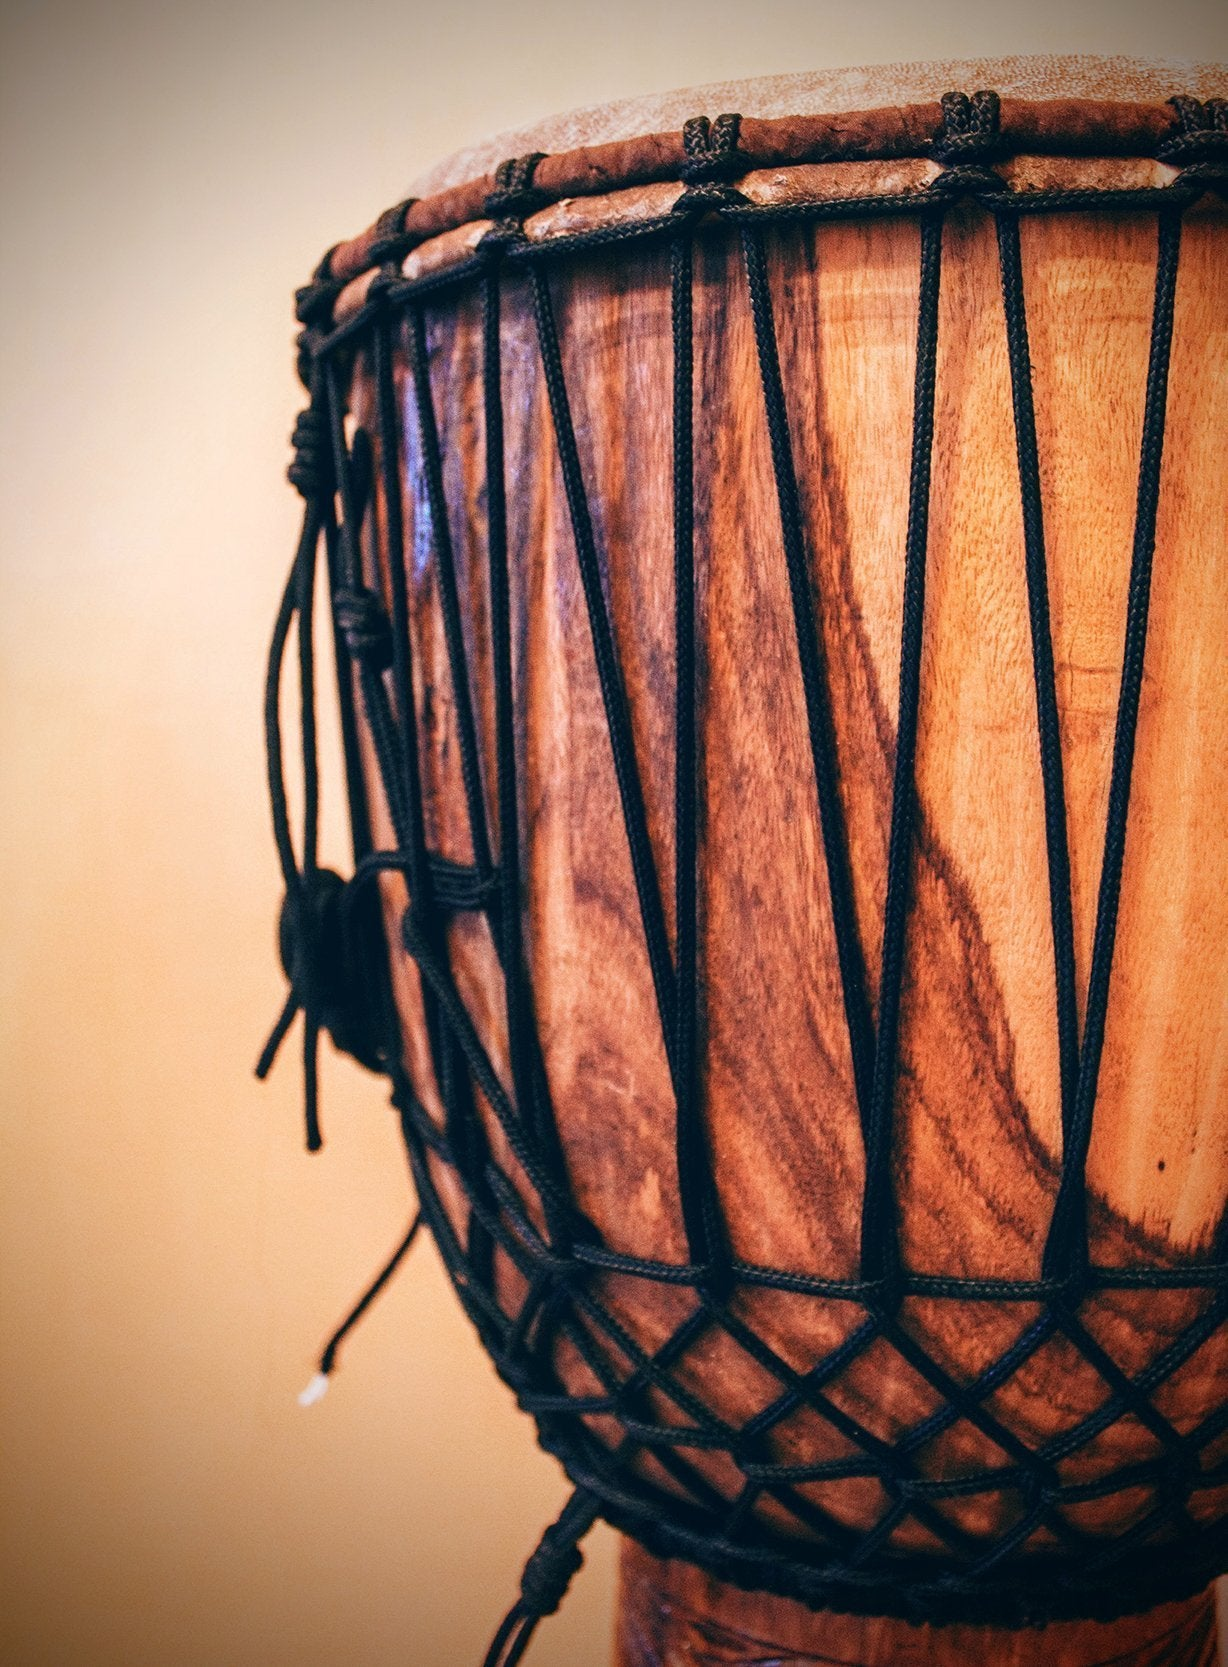 How to assemble a djembe from scratch?